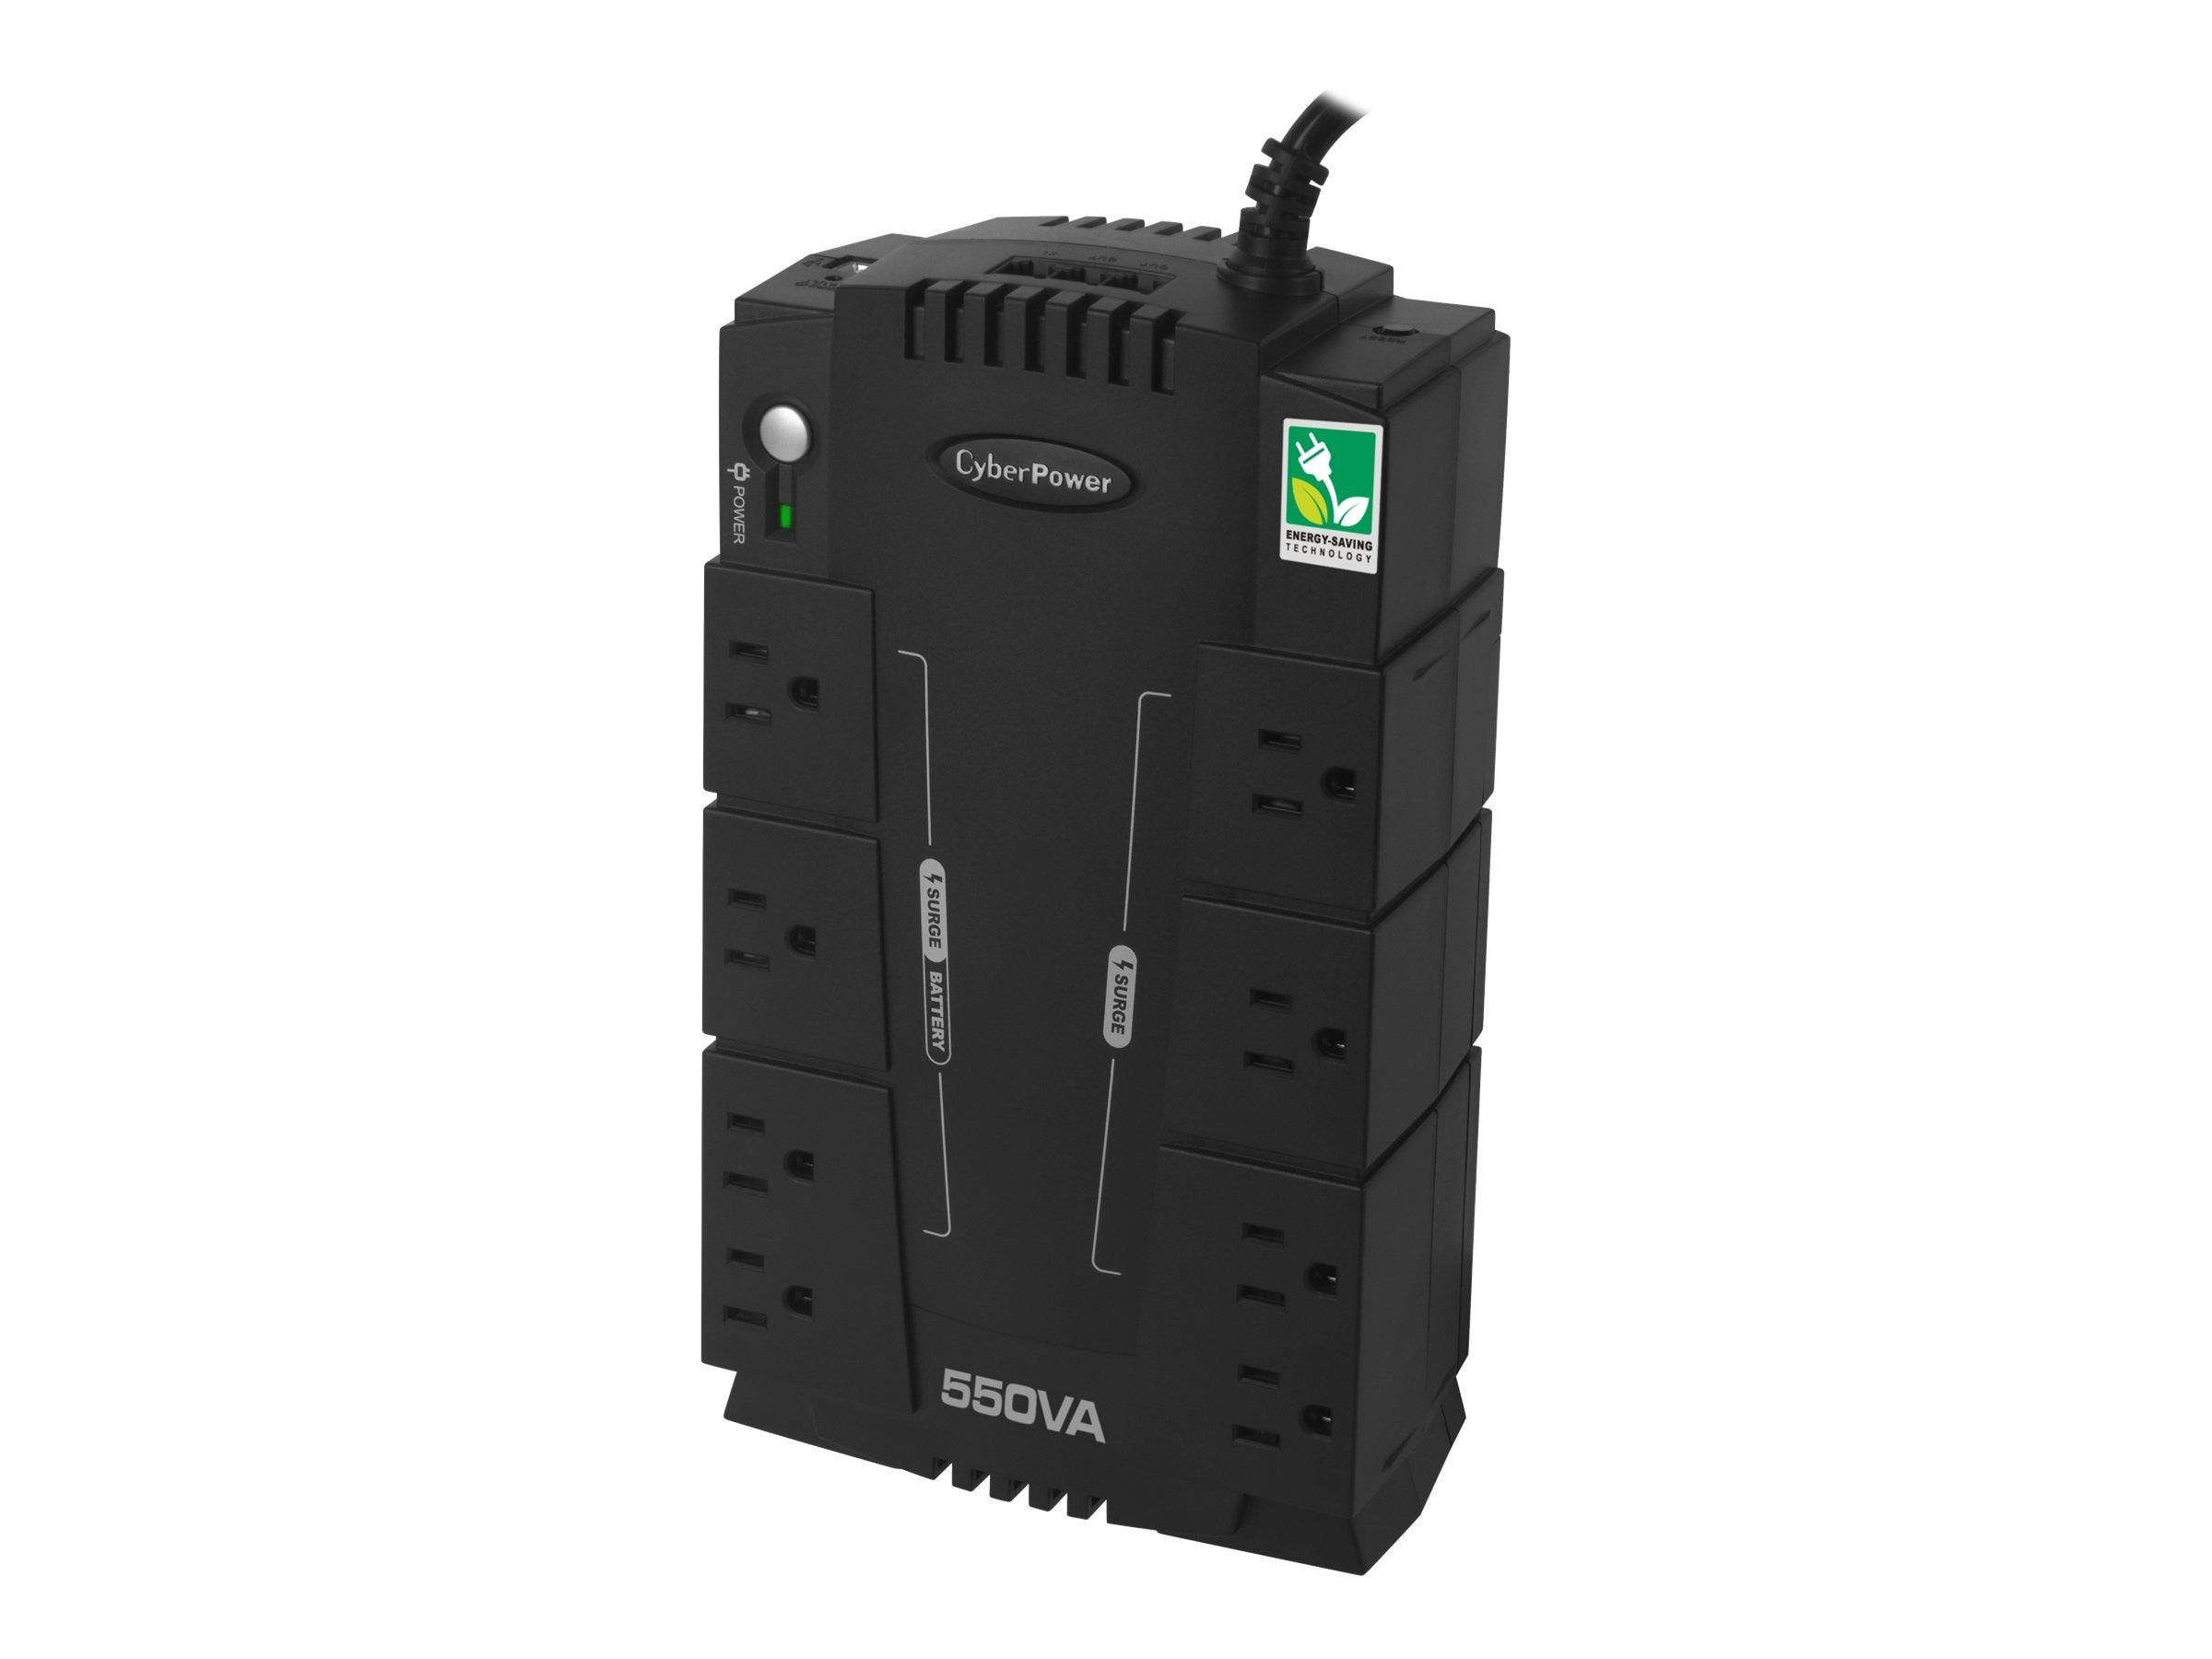 CyberPower 550VA 120V Standby Green UPS (8) 5-15R Outlets USB, RJ-11, Management Software TAA Compliant, CP550SLGTAA, 14531013, Battery Backup/UPS